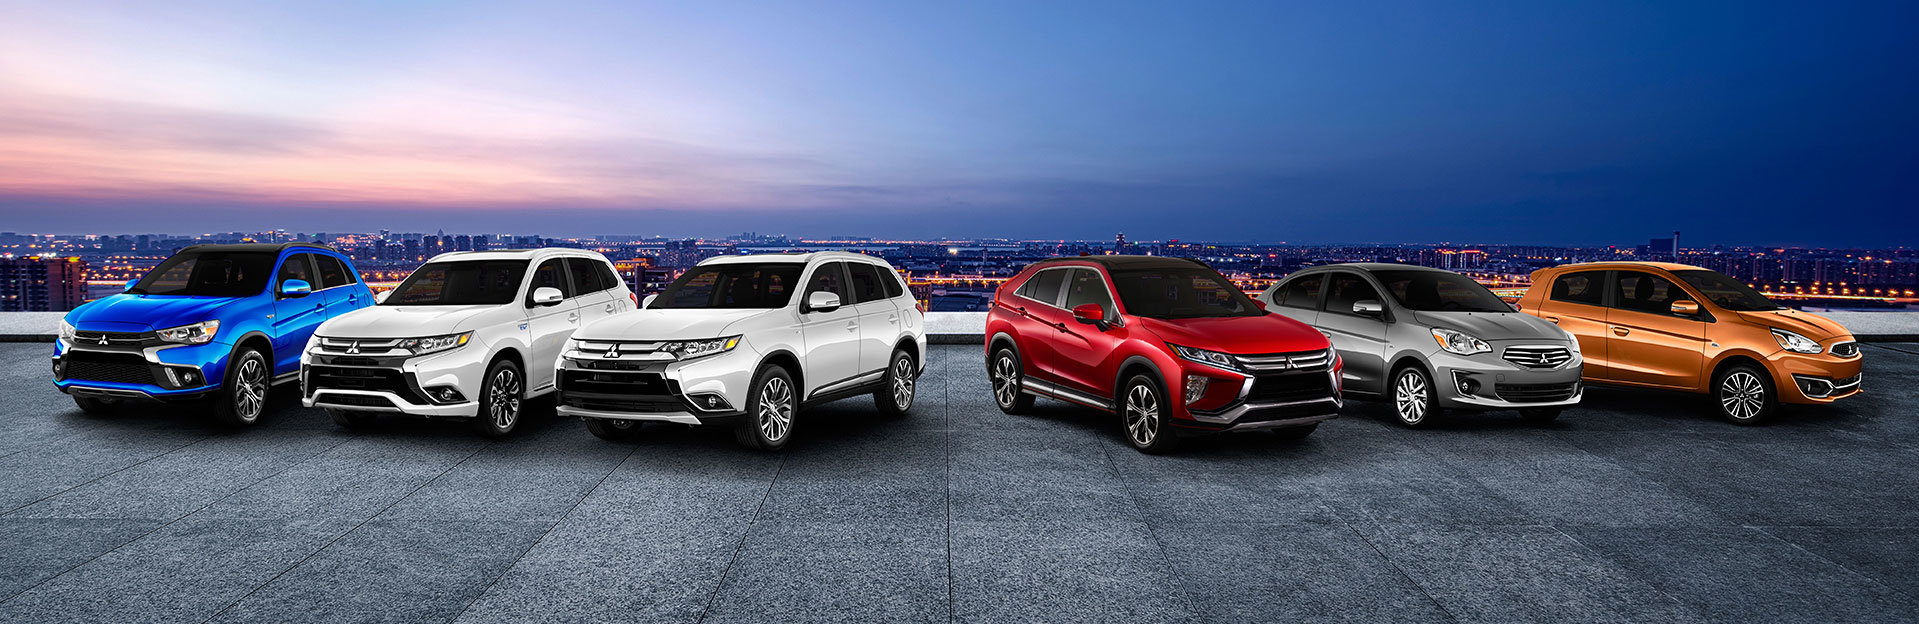 Buy Quality Mitsubishis and Used Vehicles in Holland, MI   VerHage ...